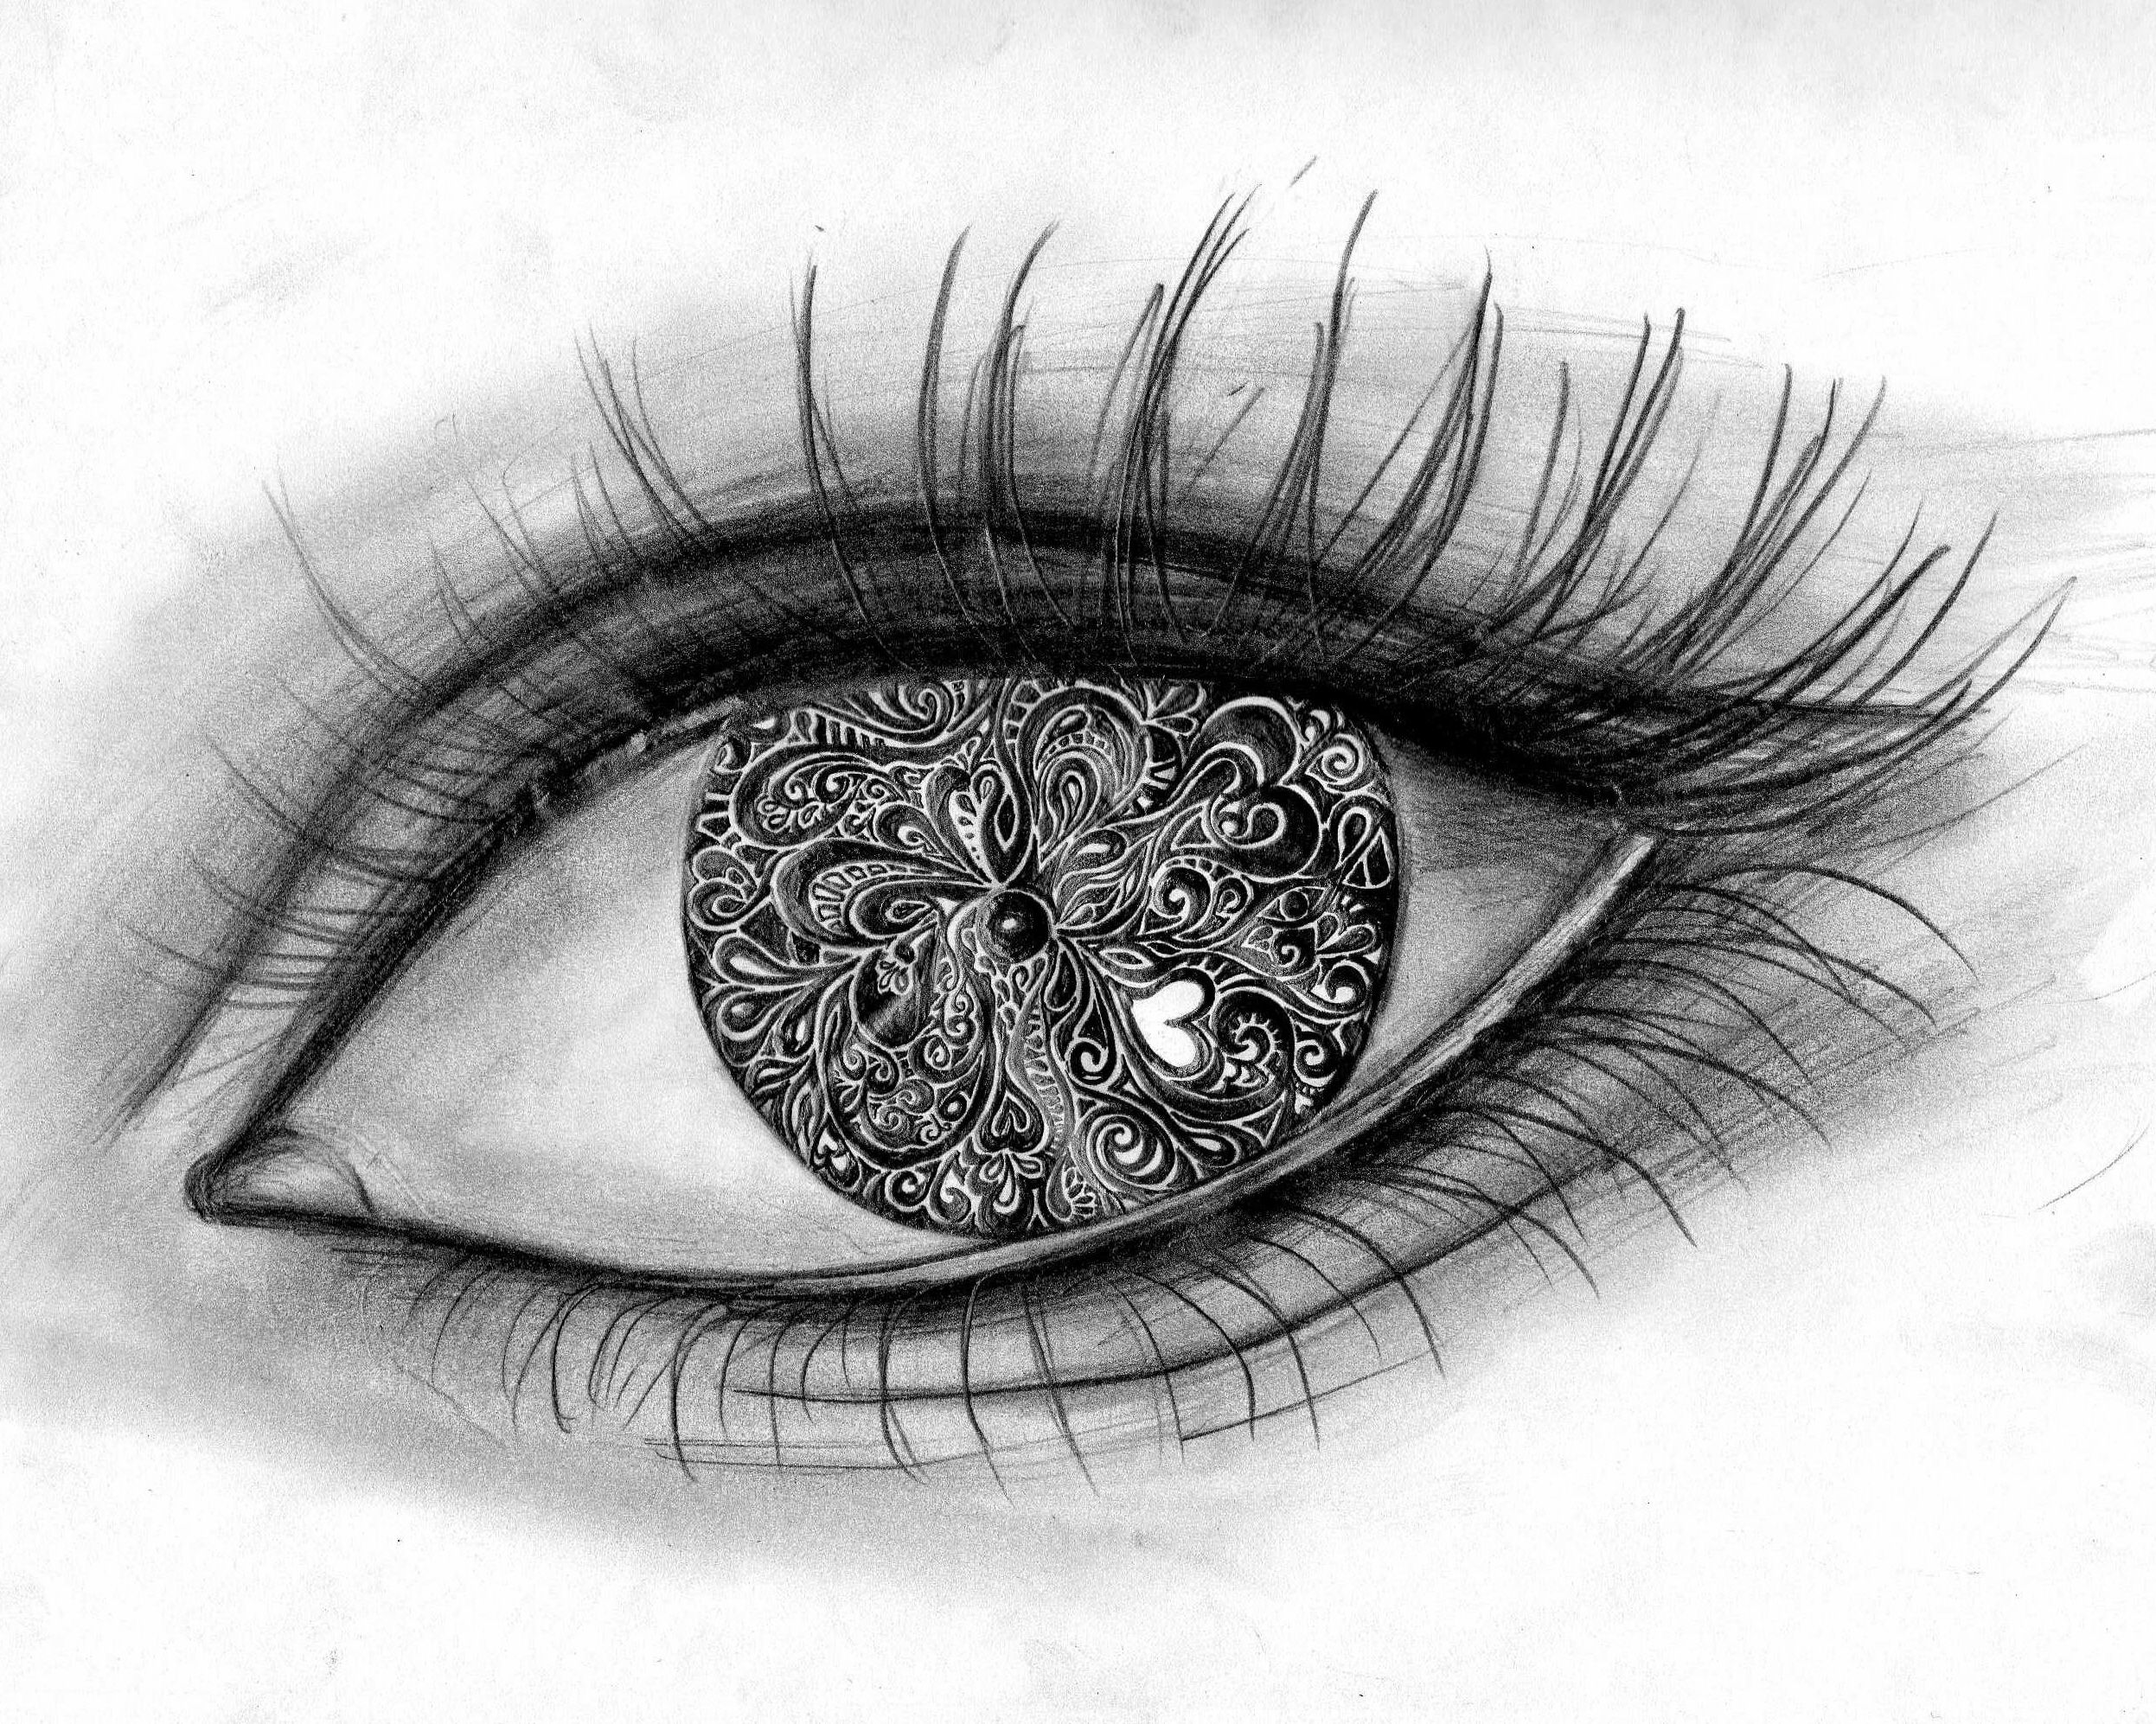 Cool Drawings Pics For Gt Cool Drawings Of Eyes Tumblr